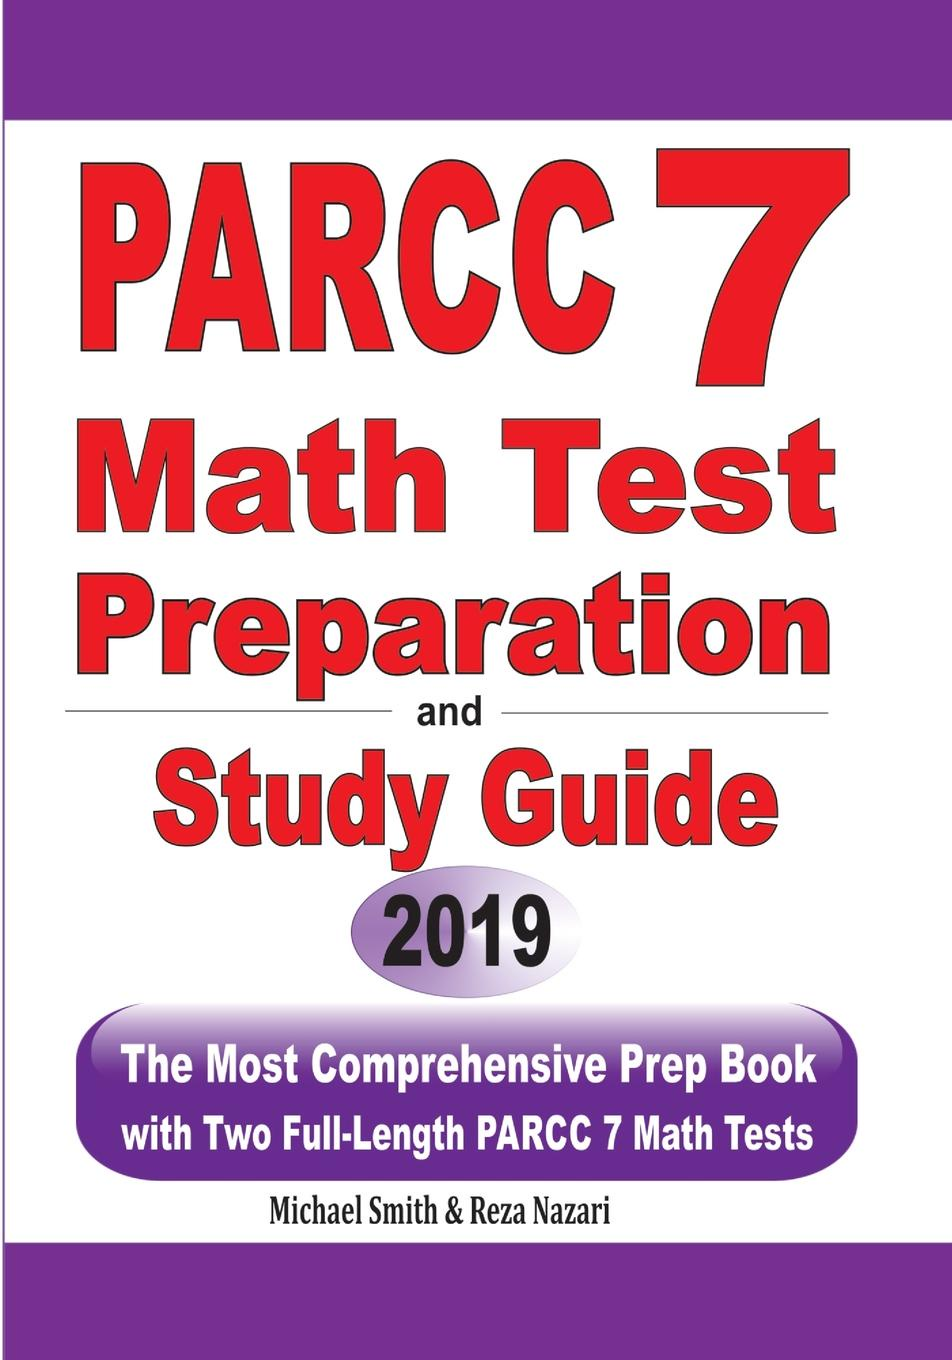 Michael Smith, Reza Nazari PARCC 7 Math Test Preparation and Study Guide. The Most Comprehensive Prep Book with Two Full-Length PARCC Math Tests